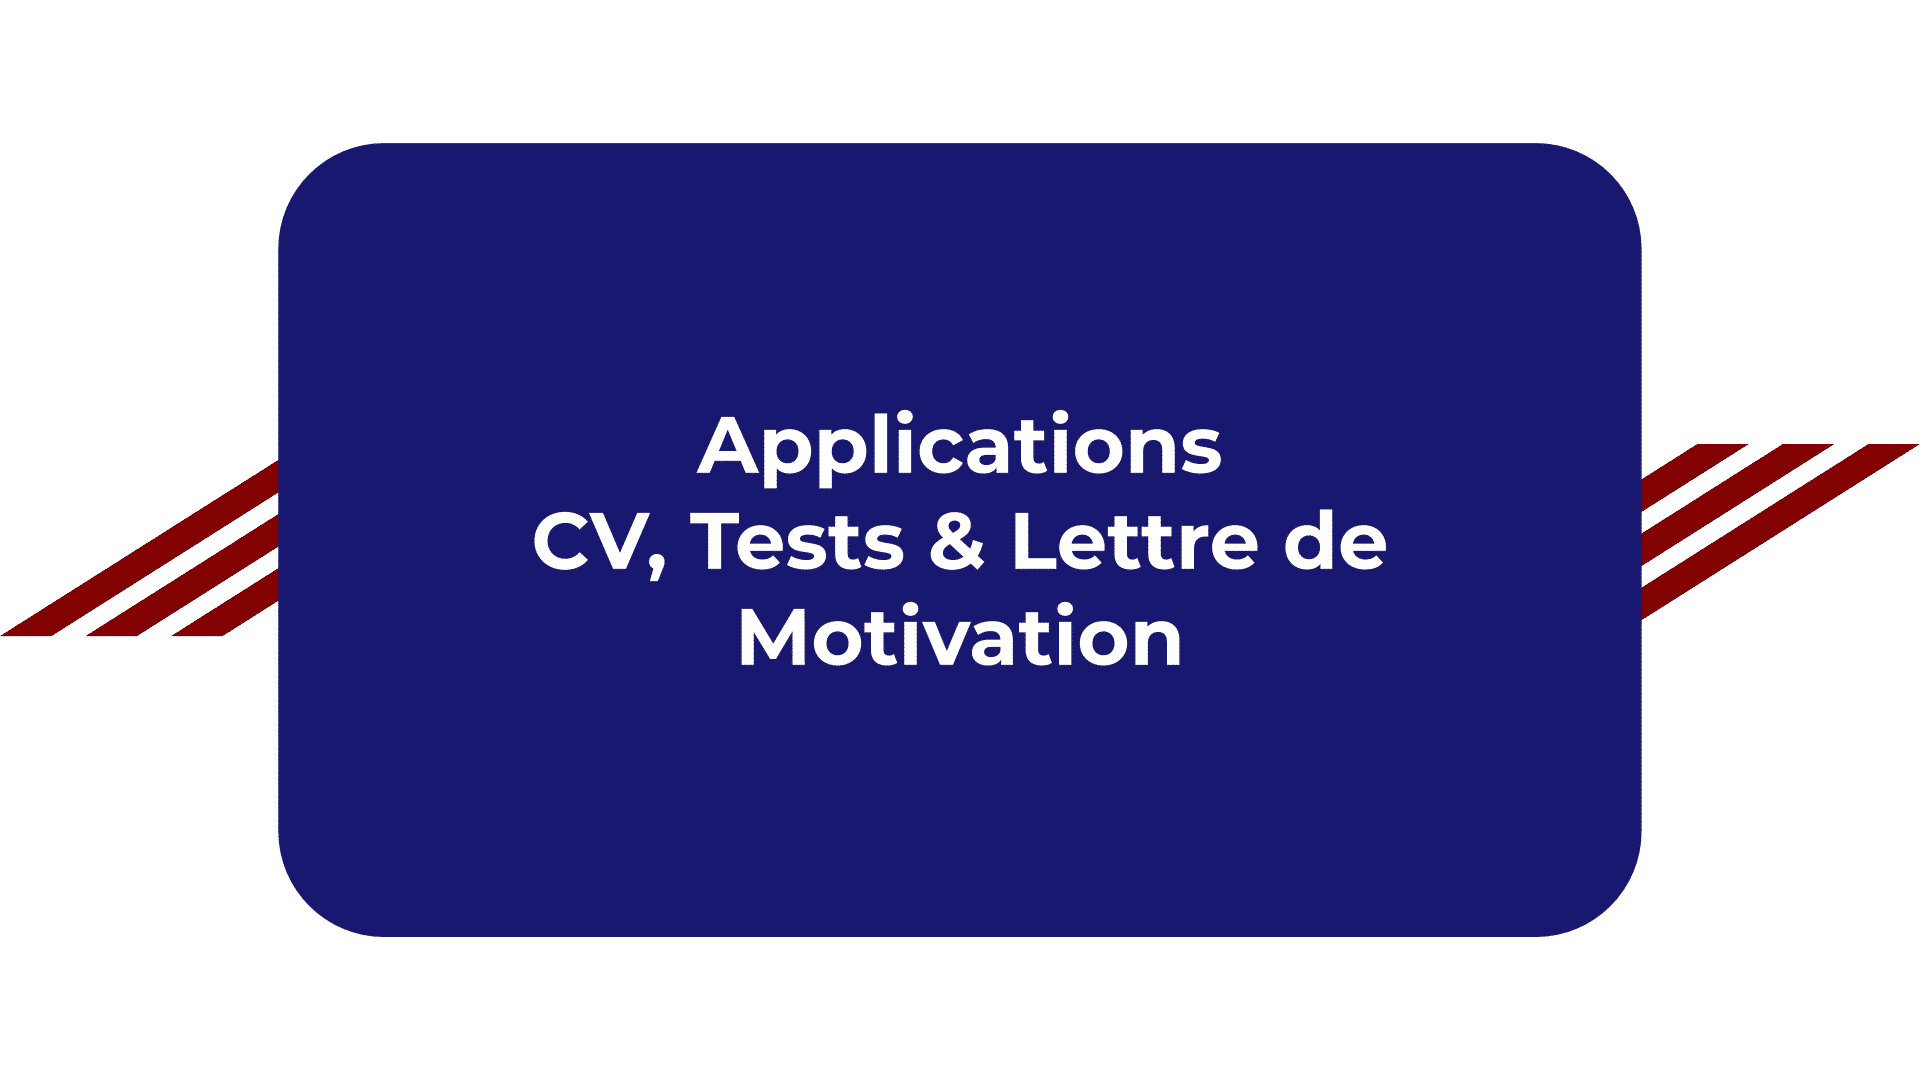 Applications CV, Tests & Lettre de Motivation